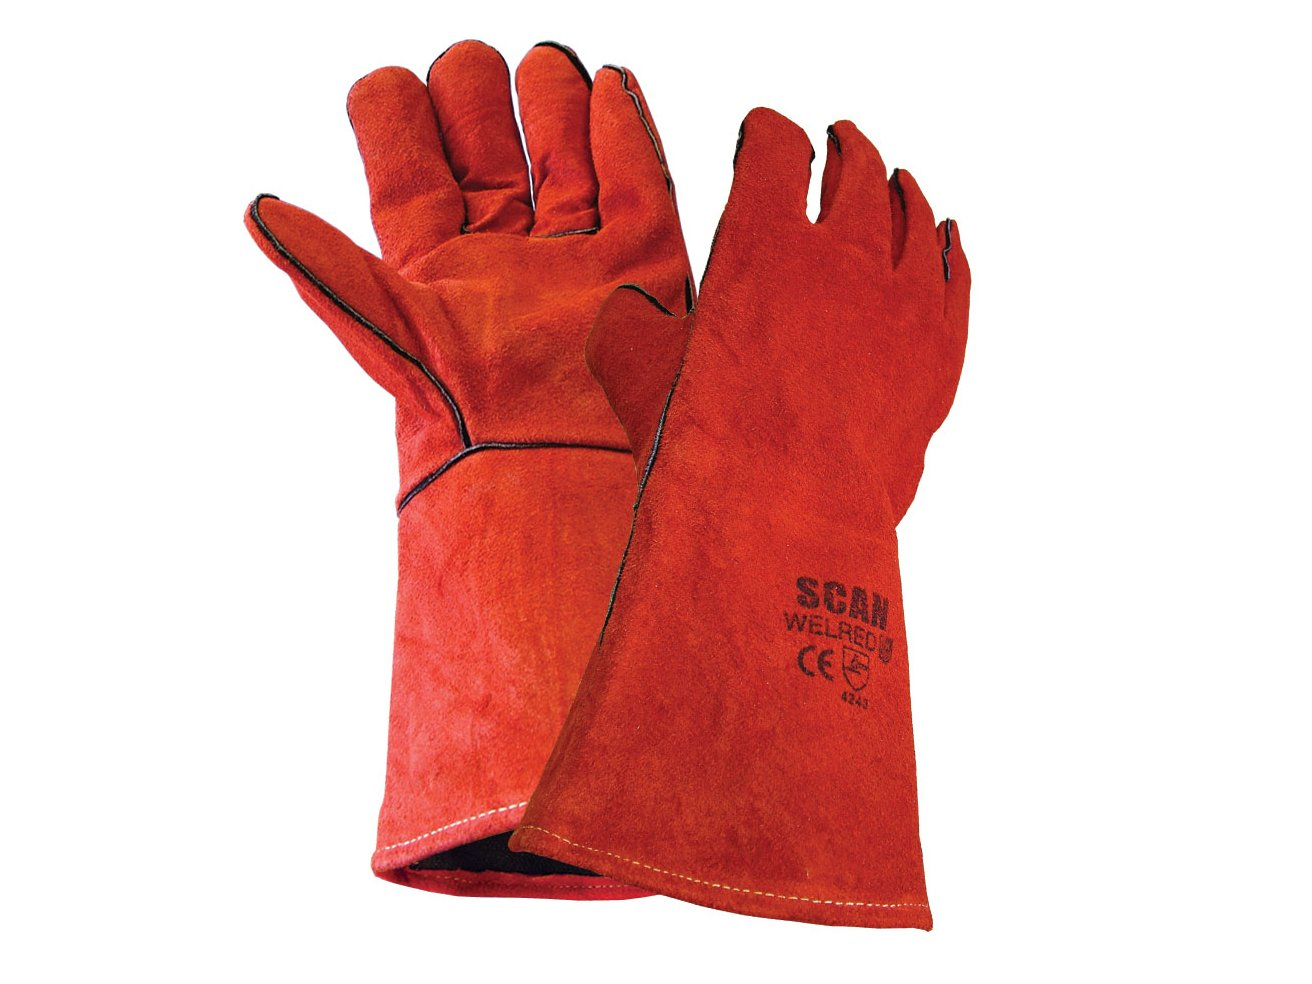 Leather work gloves screwfix - Product Details